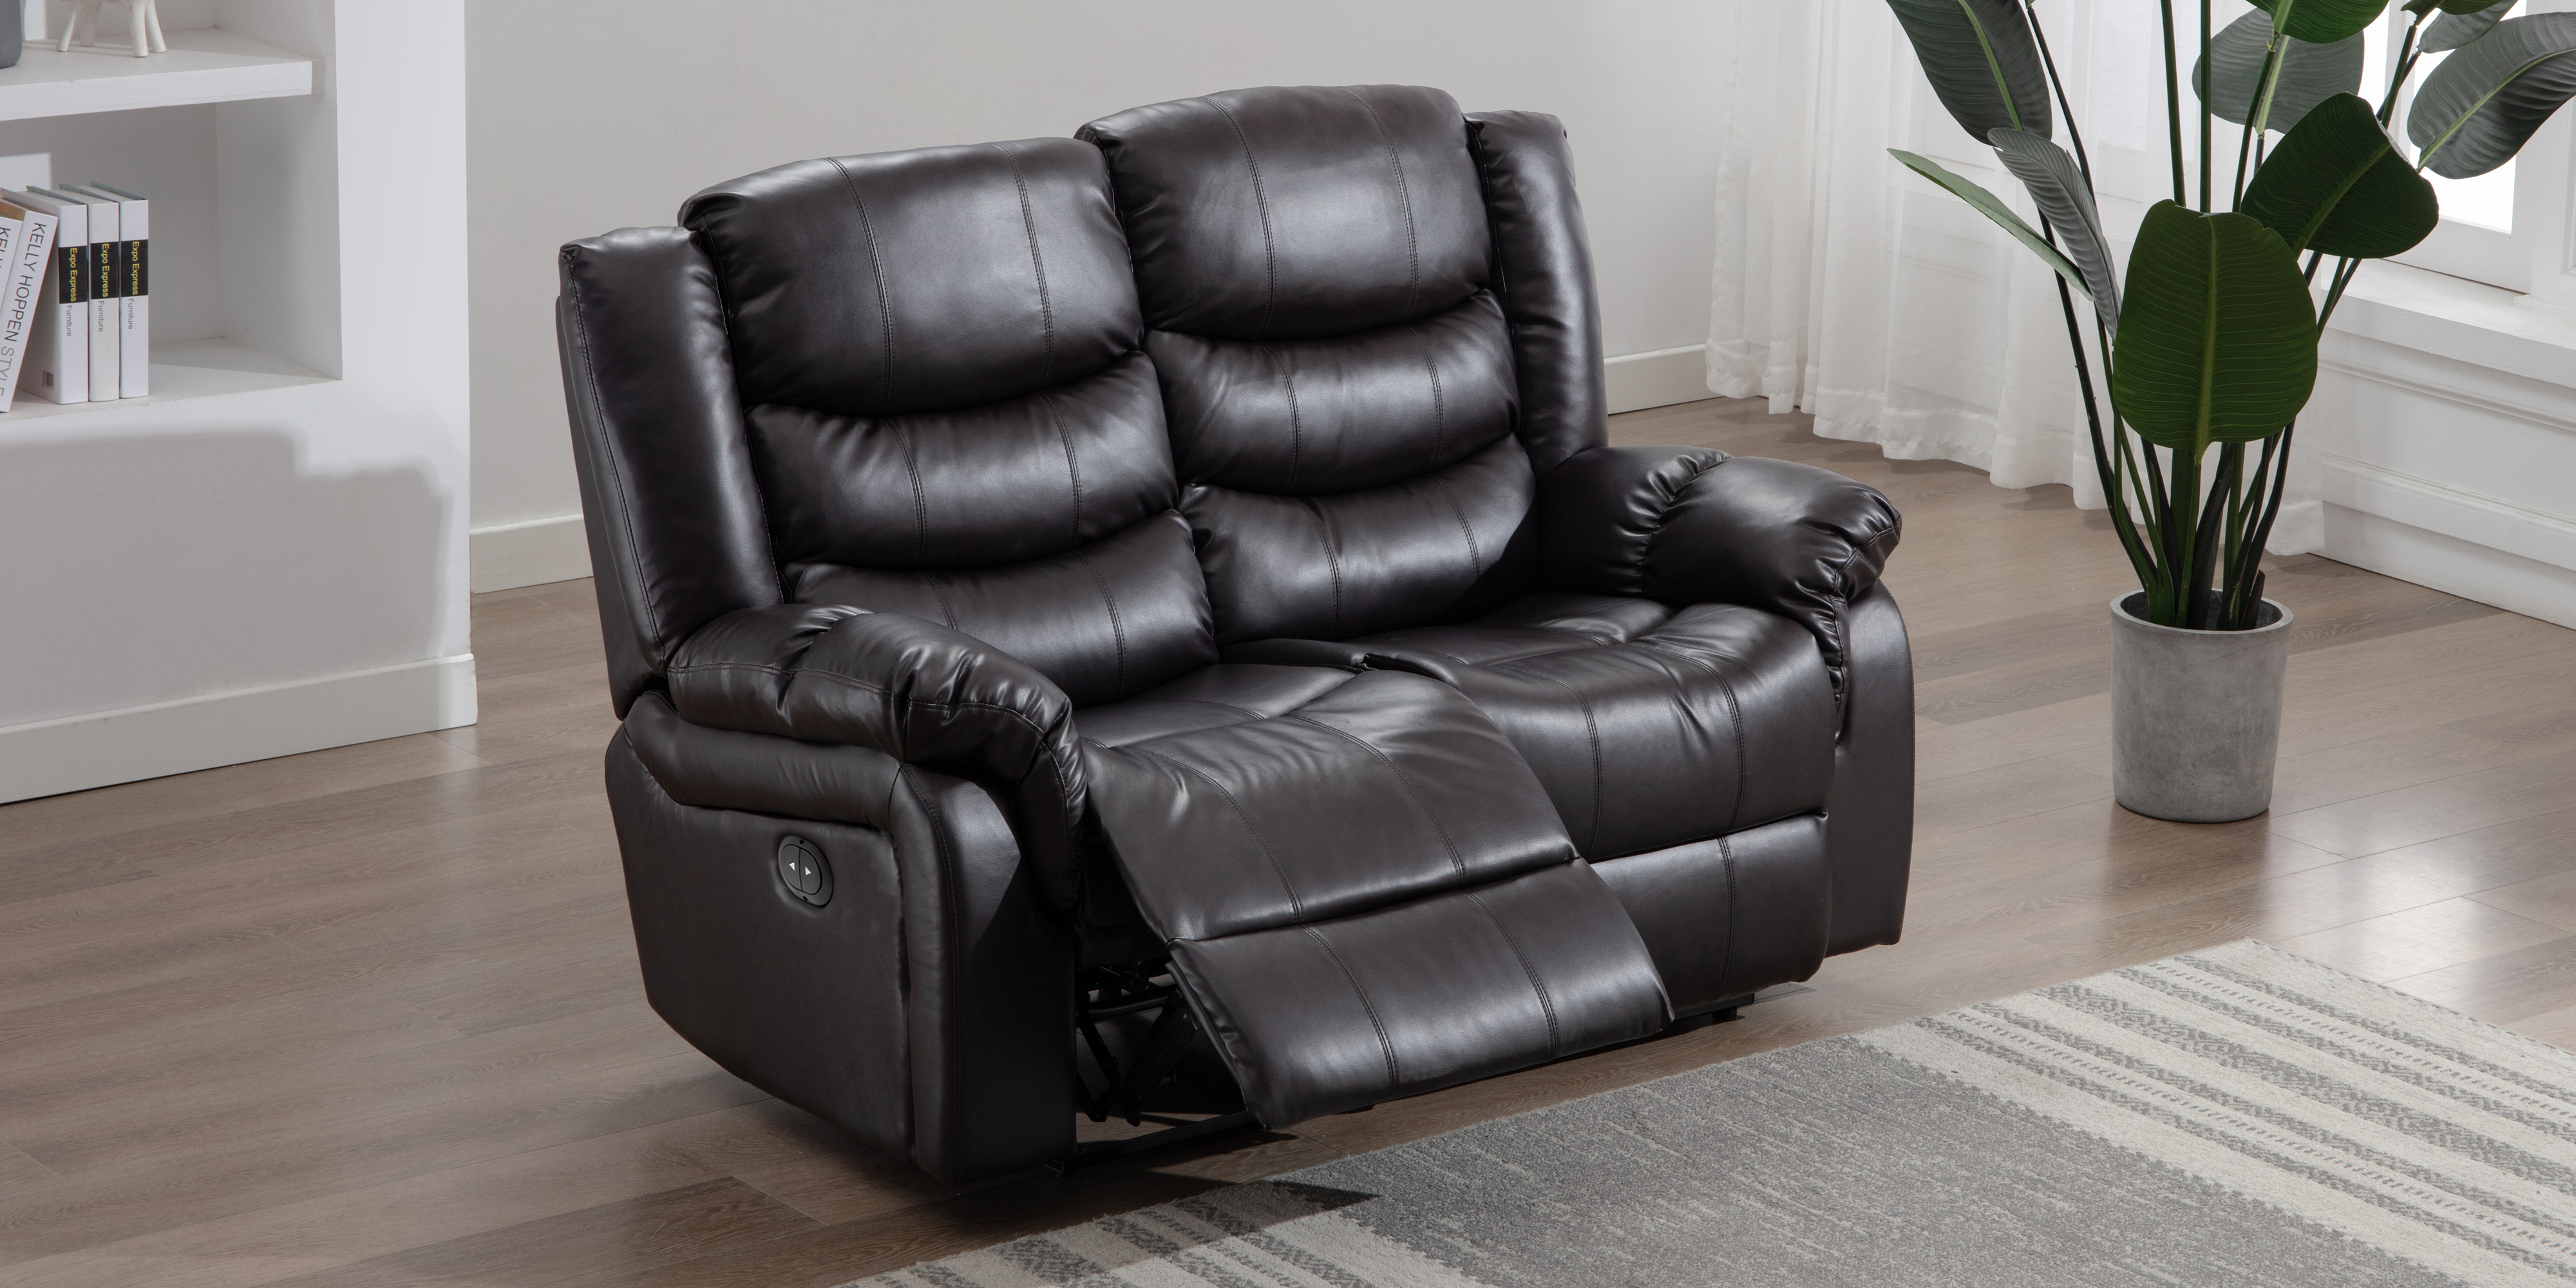 Cheshire Electric 2 Seater Leather Recliner Sofa In Brown